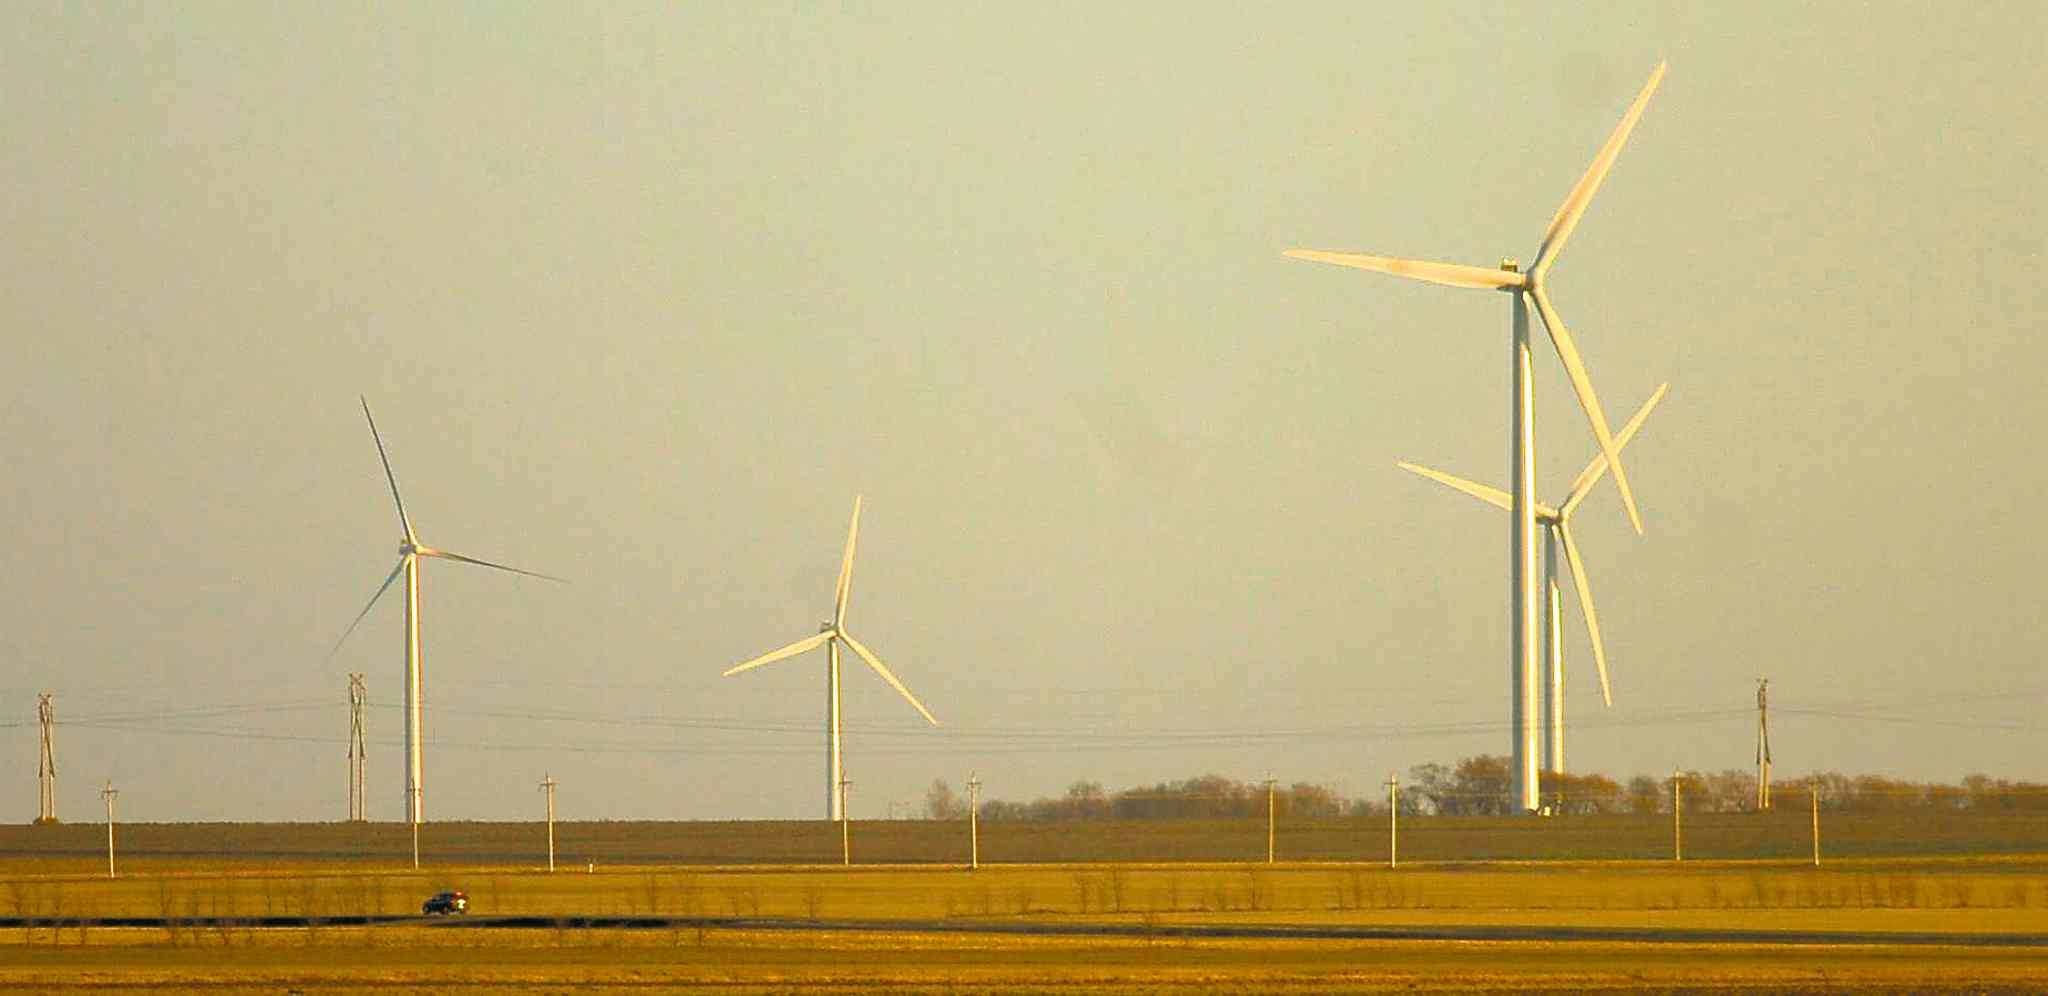 These turbines have been a fixture in St. Leon for years. Plans to build another wind farm have been scrapped. Proponents say Manitoba Hydro is set on building two dams.